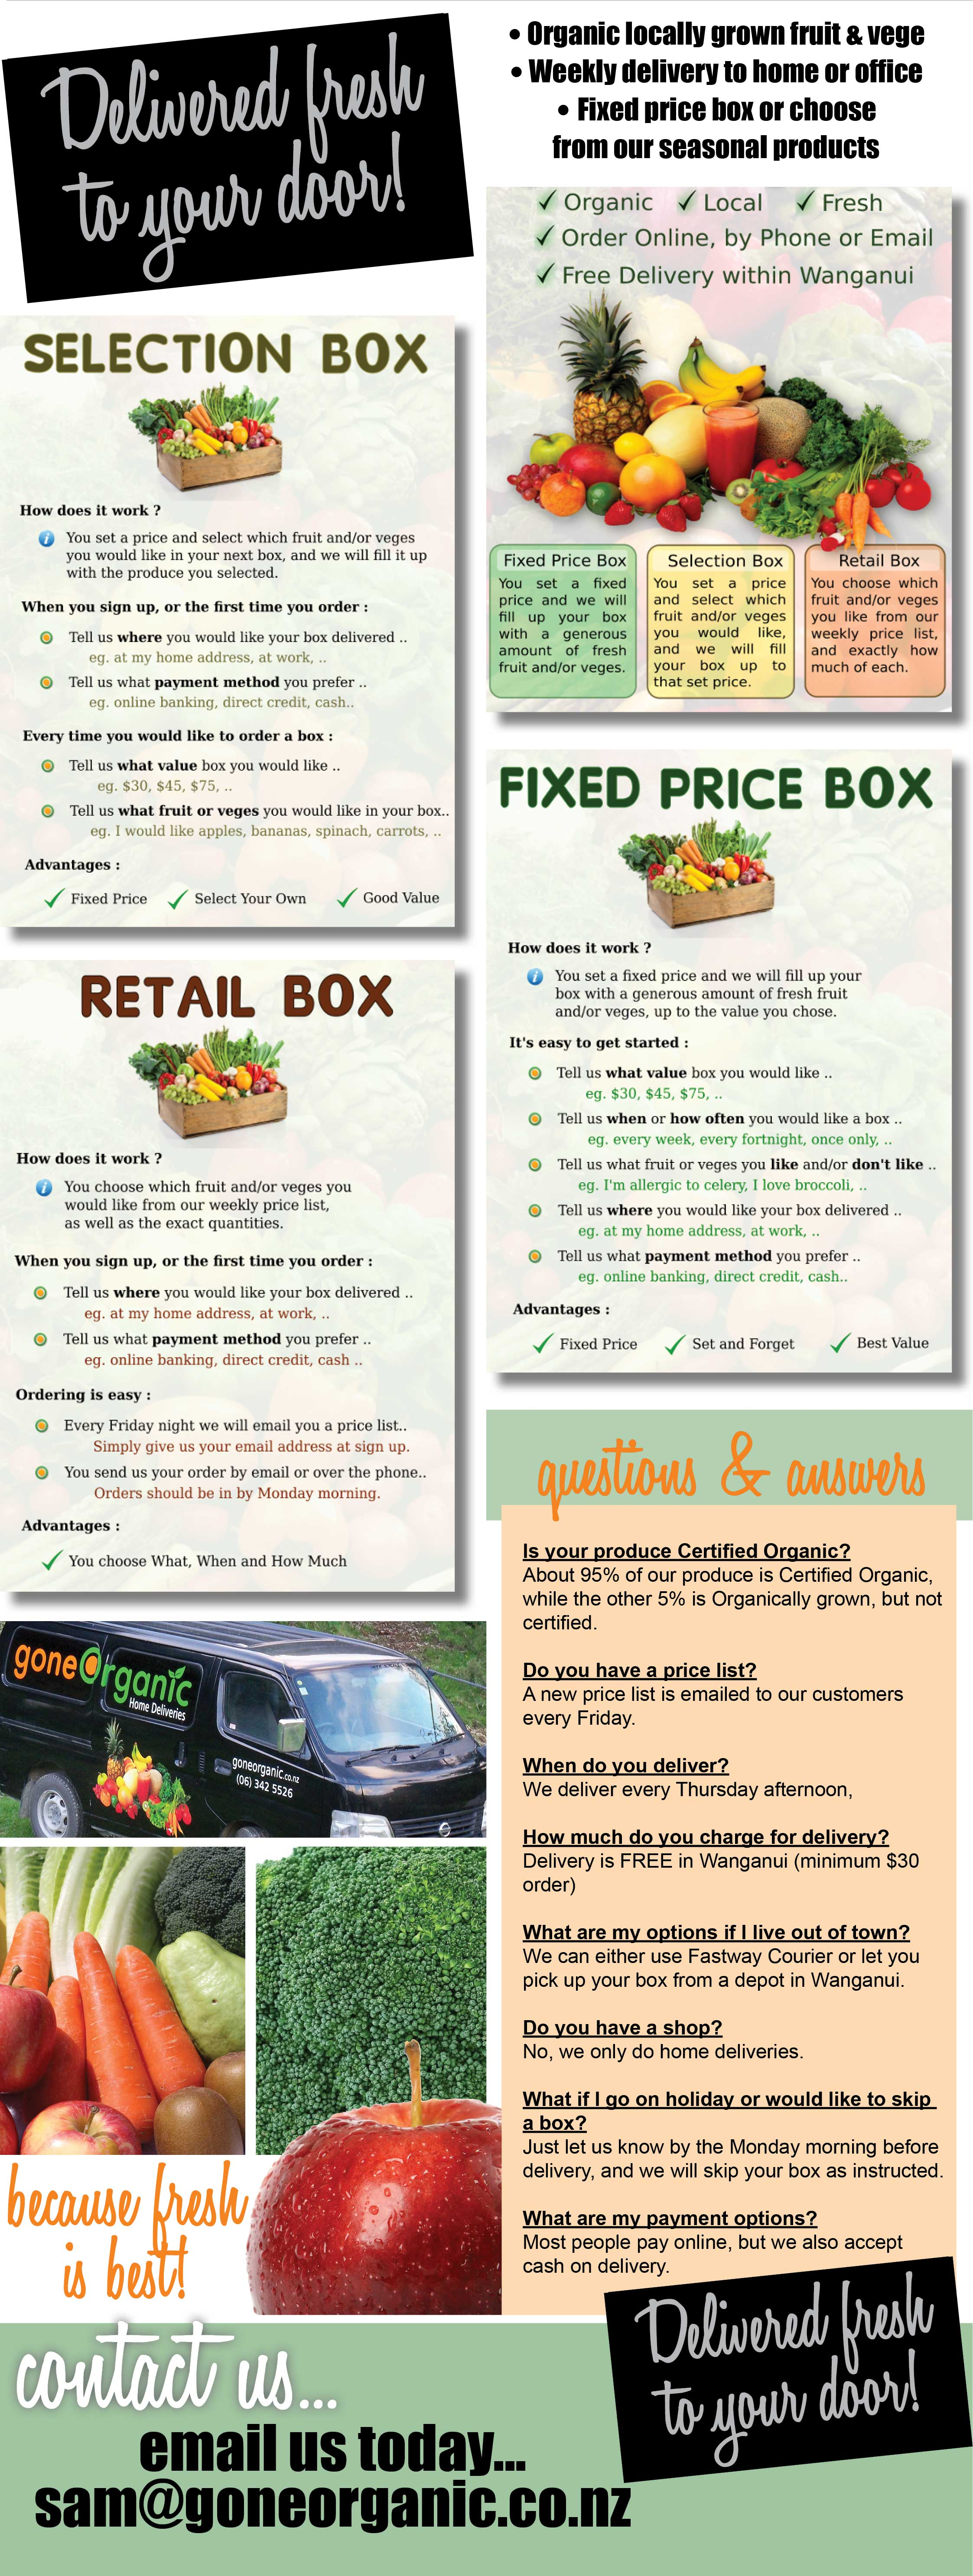 Gone Organic Wanganui. Organic fruit & vege Wanganui, weekly delivery to your home or office, fixed box price or choose from our seasonal products.